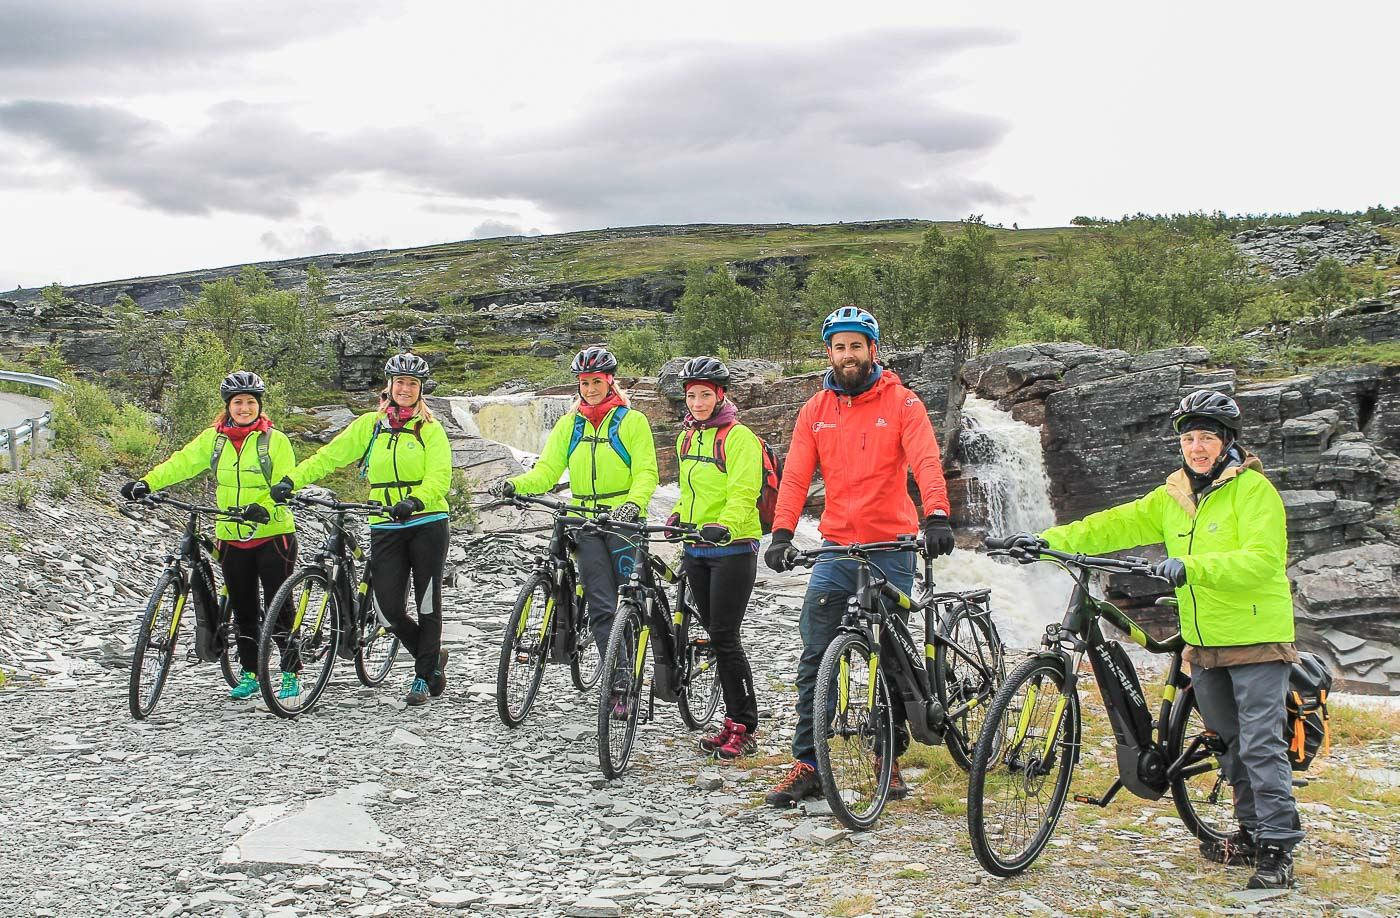 GUIDED E-BIKE TRIP IN THE MOUNTAINS / NORD EKSPEDISJON